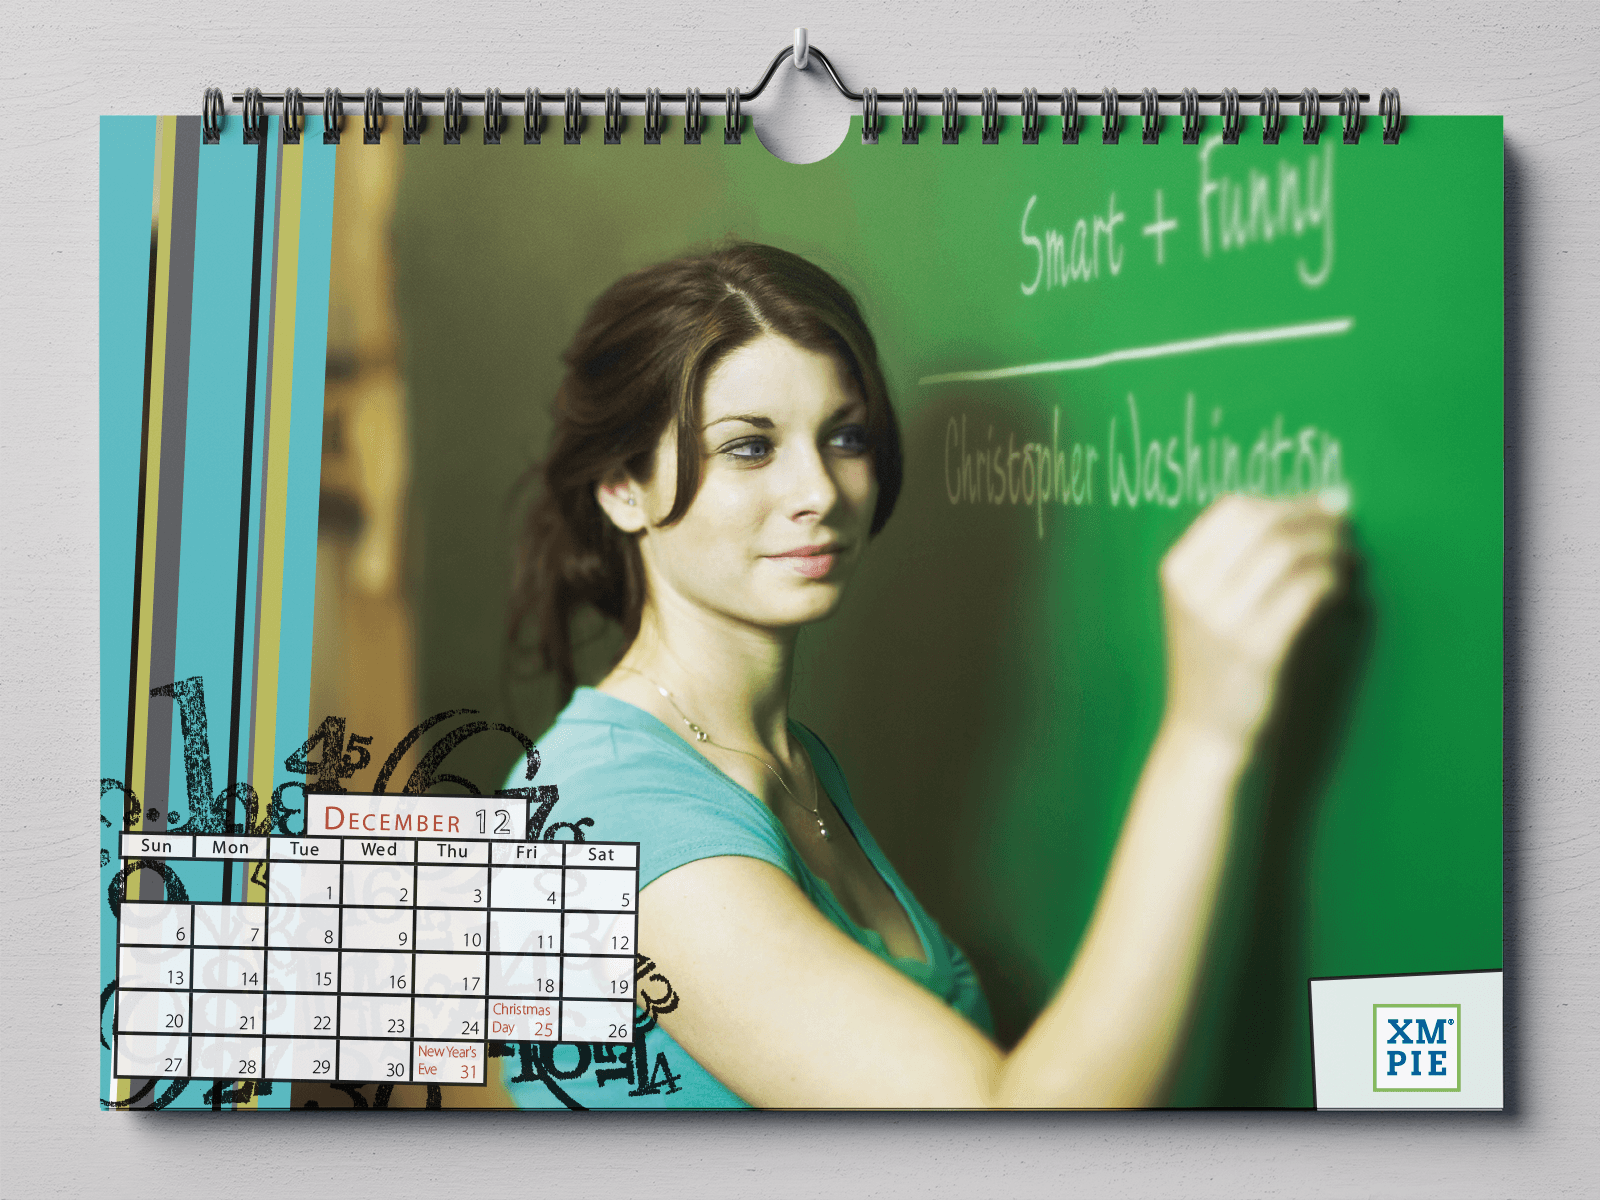 https://bigeyes.co.il/wp-content/uploads/2019/07/college-calendar-13.png